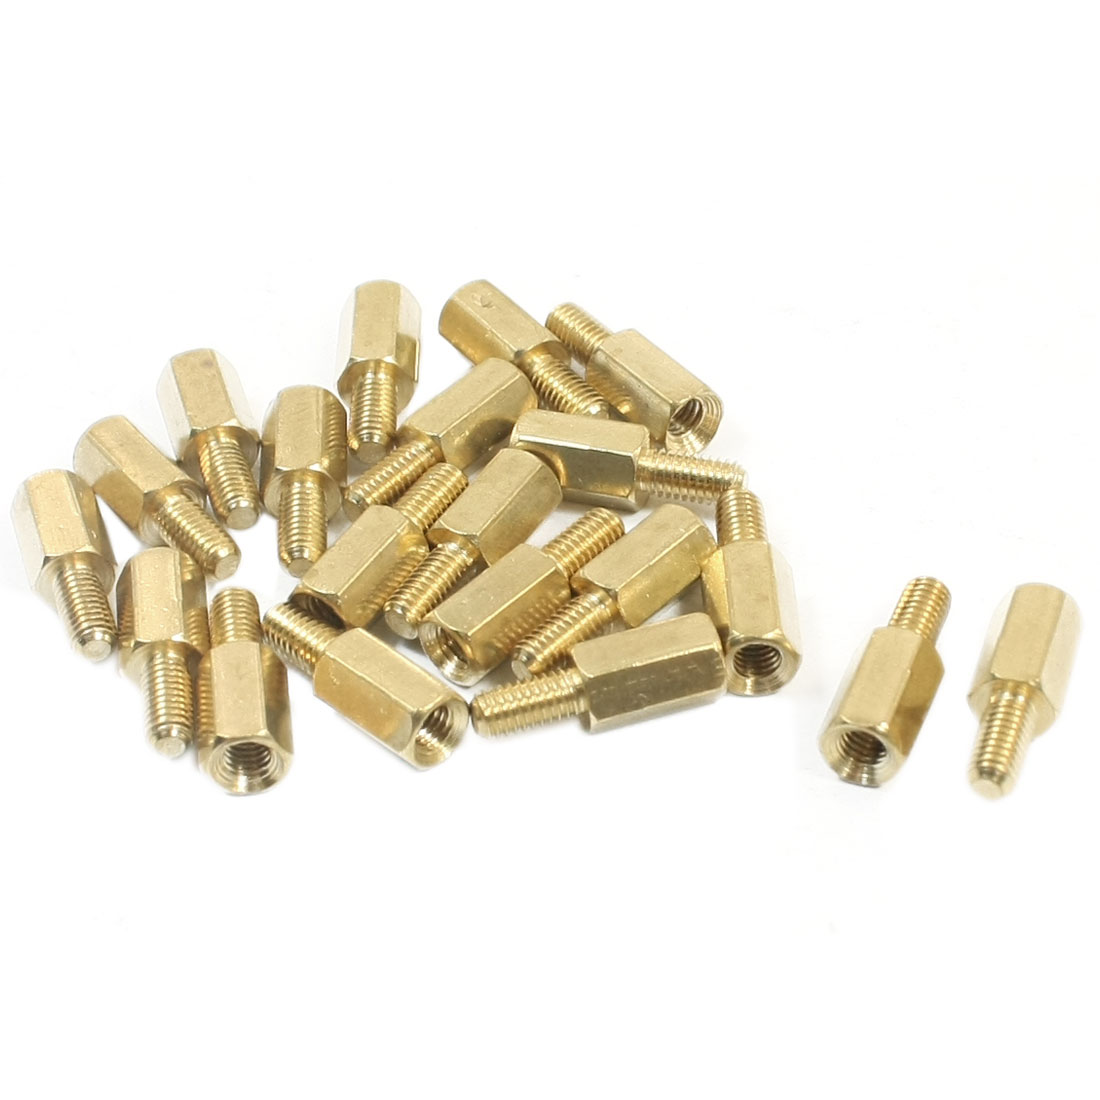 M3 x 8mm x 14mm Male/Female Threaded Gold Tone Brass PCB Hexagon Nut Standoff Spacer 20Pcs